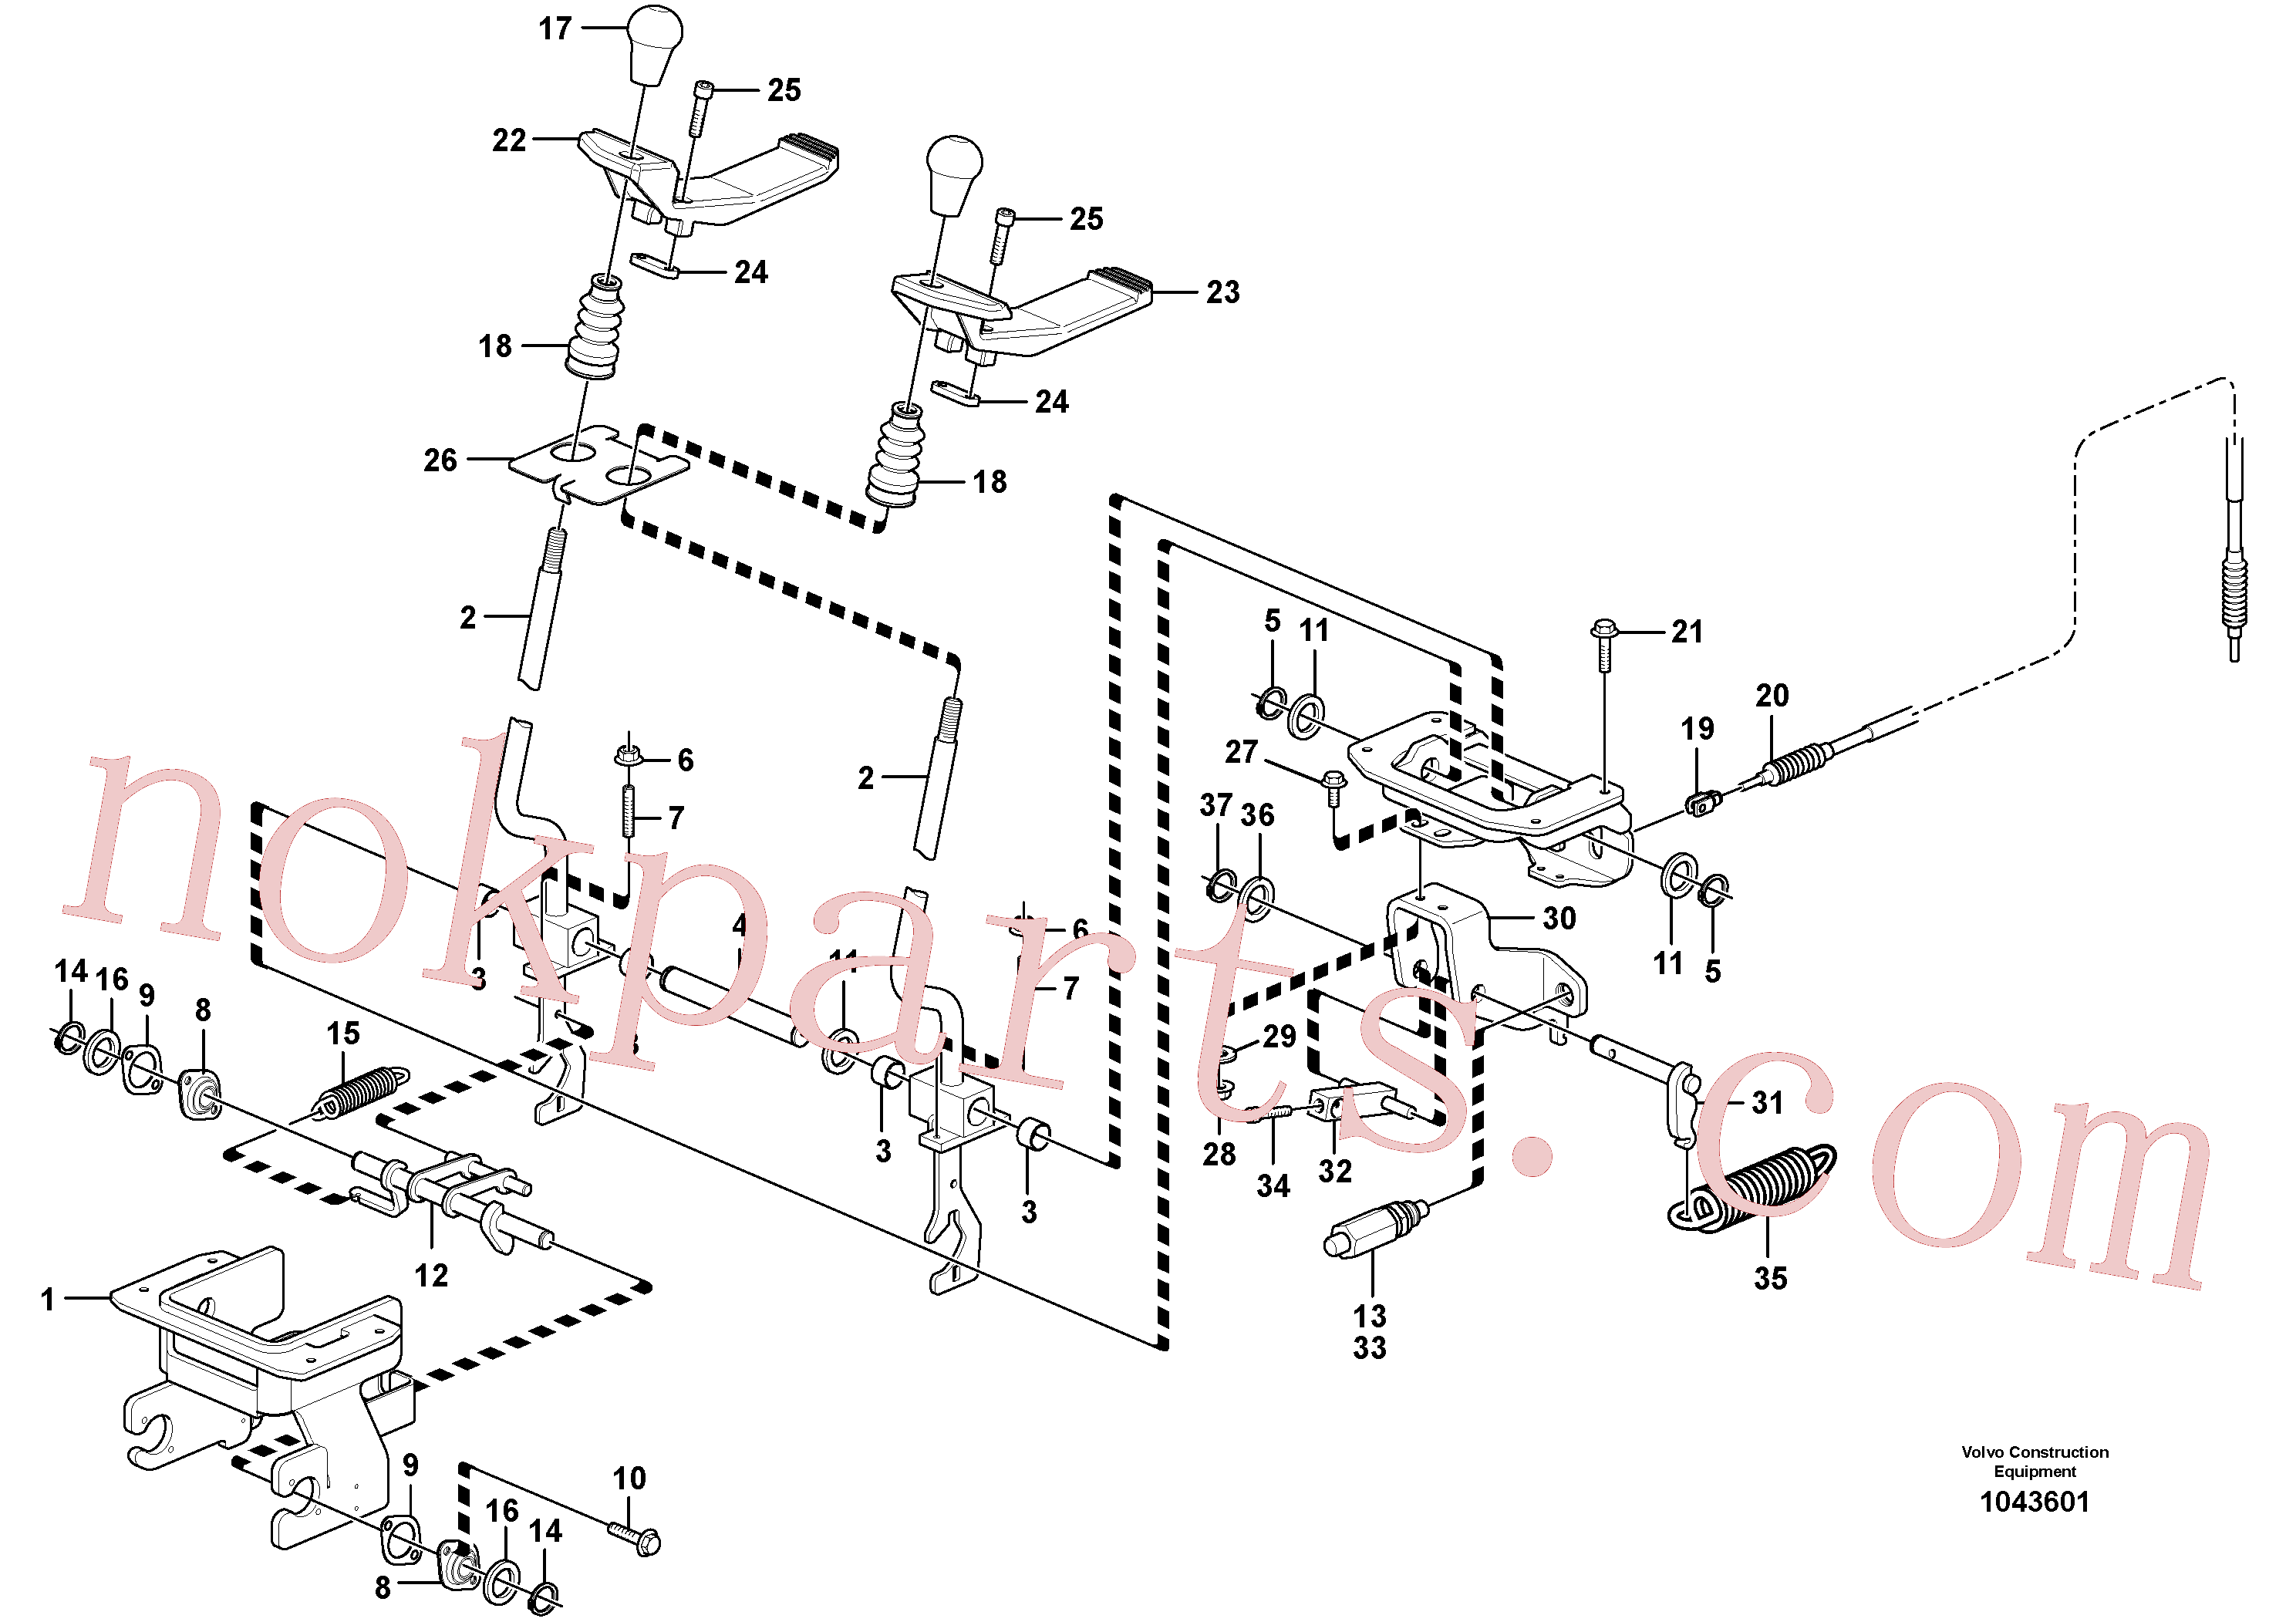 VOE11803169 for Volvo Control levers : travelling(1043601 assembly)